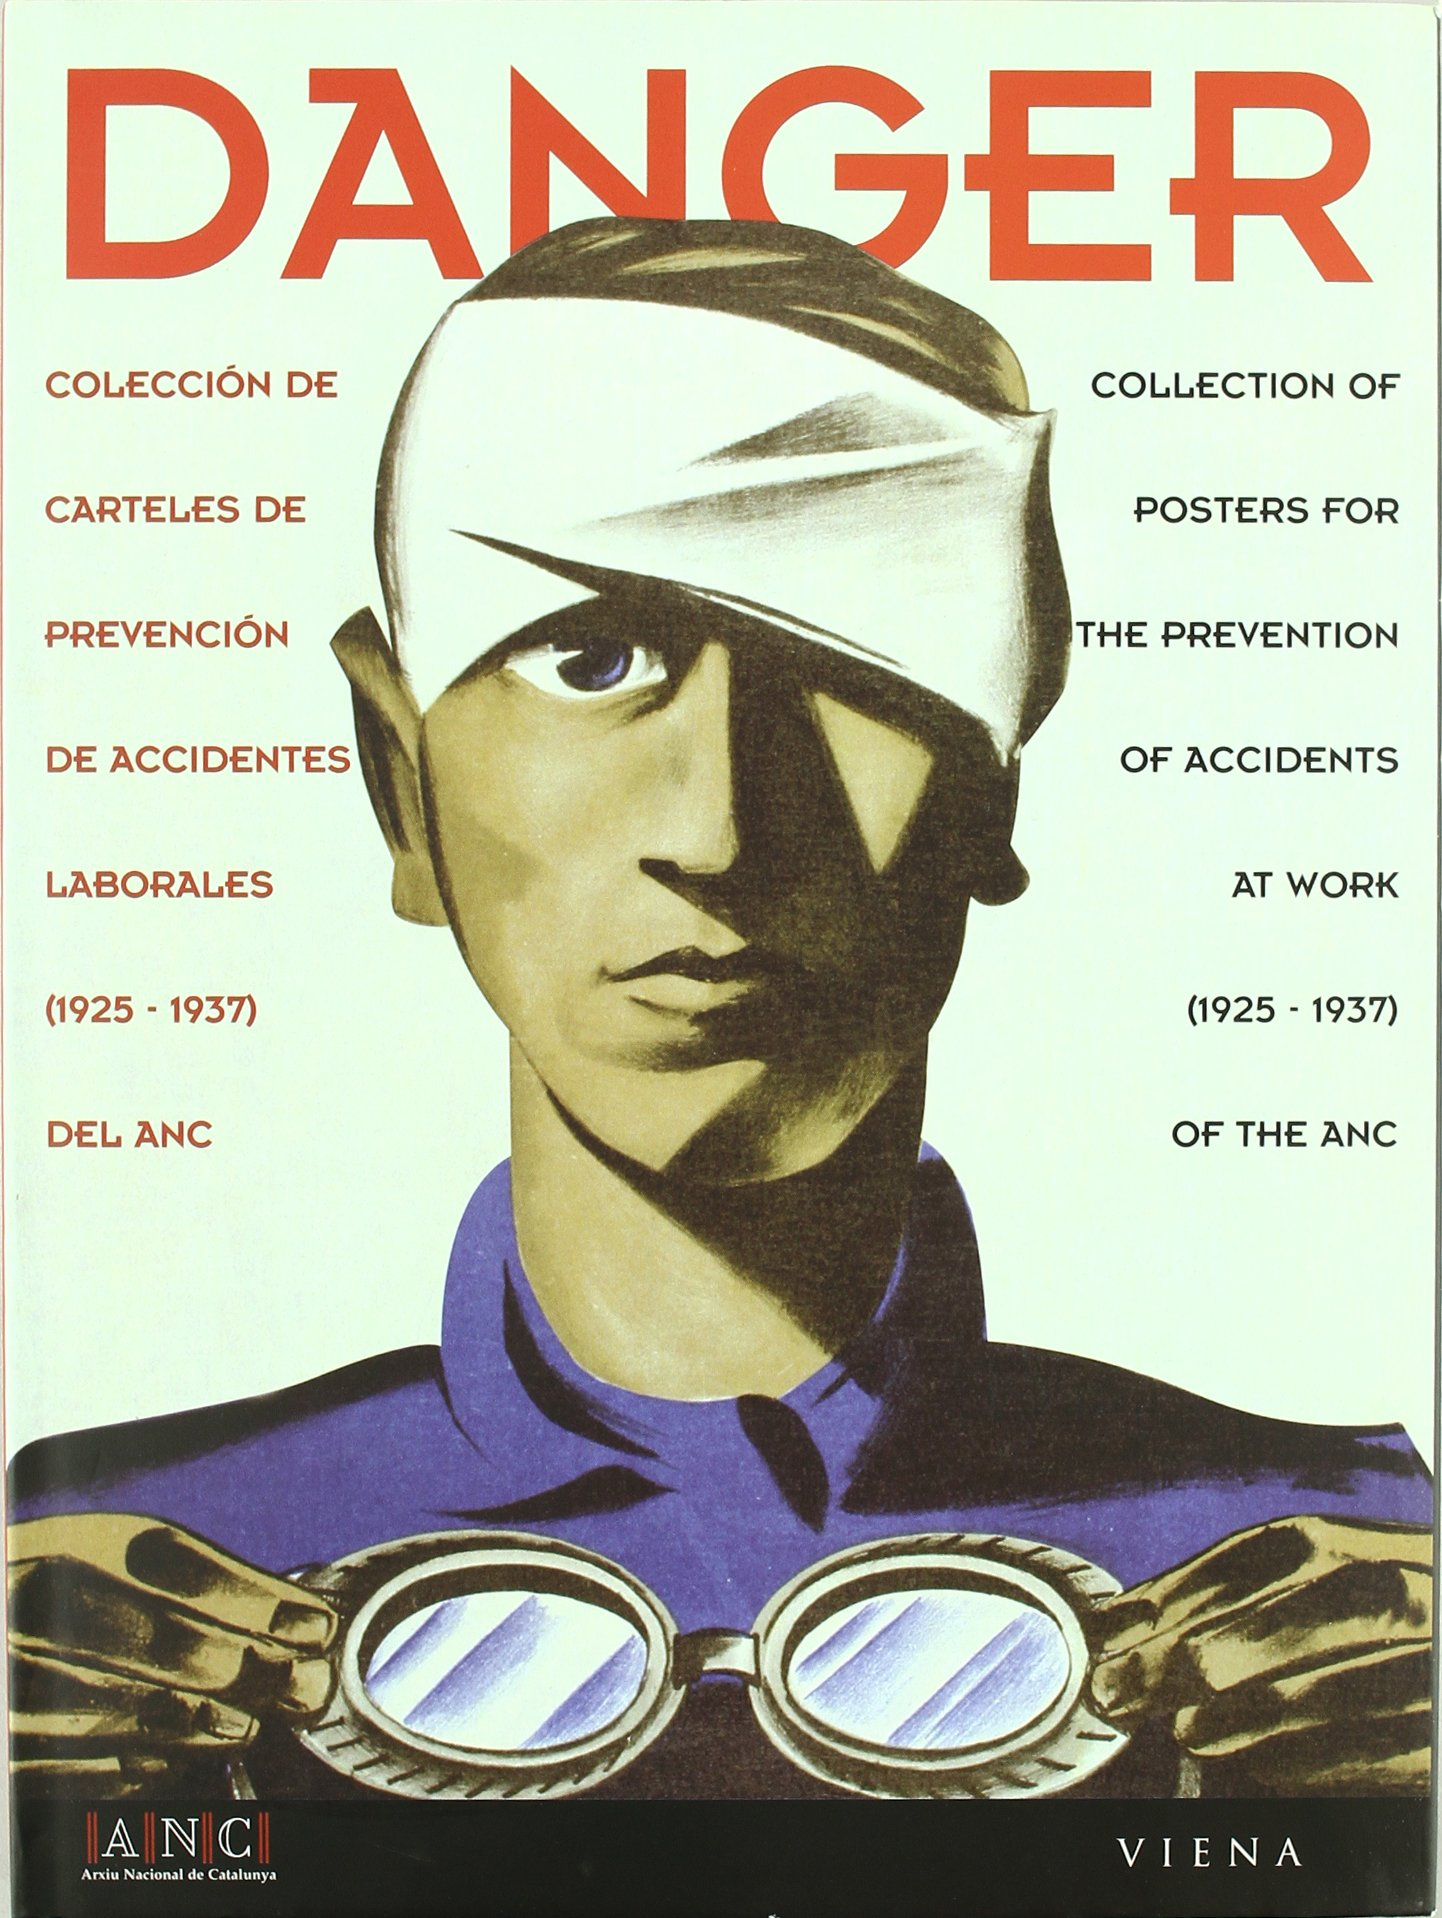 DANGER: COLECCION DE CARTELES DE PREVENCION DE ACCIDENTES ...